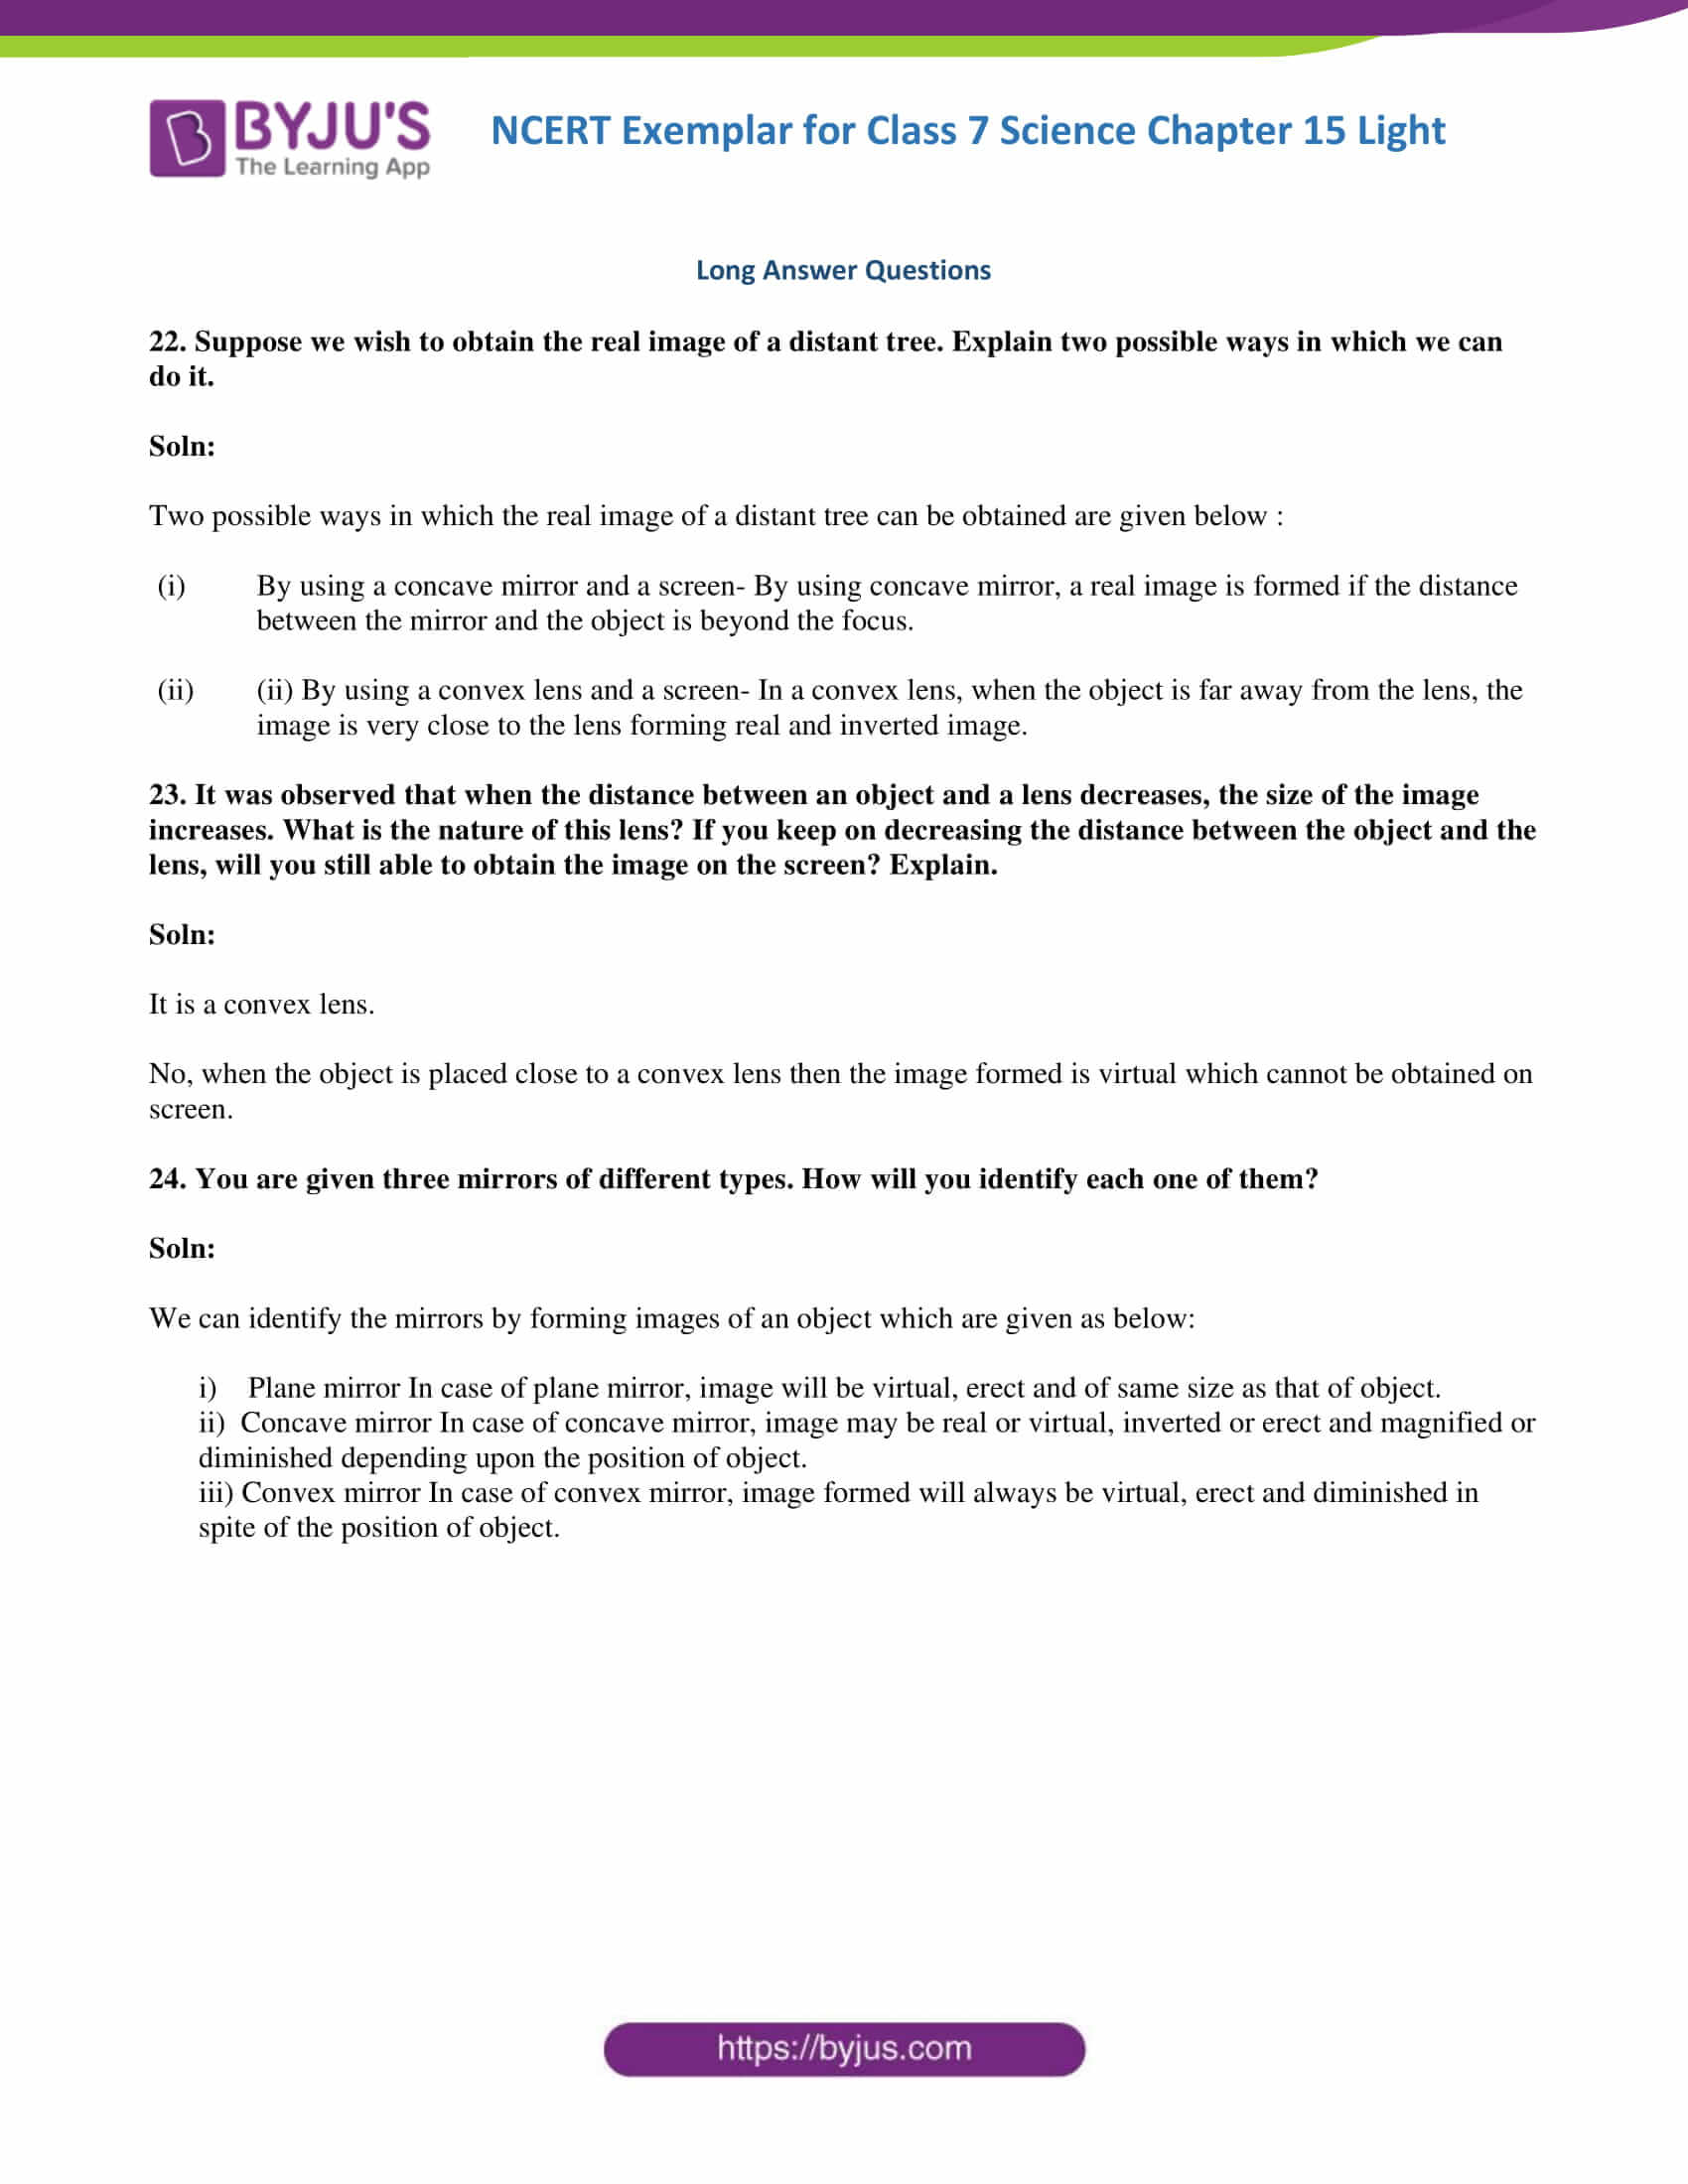 NCERT Exemplar solution class 7 science Chapter 15 7